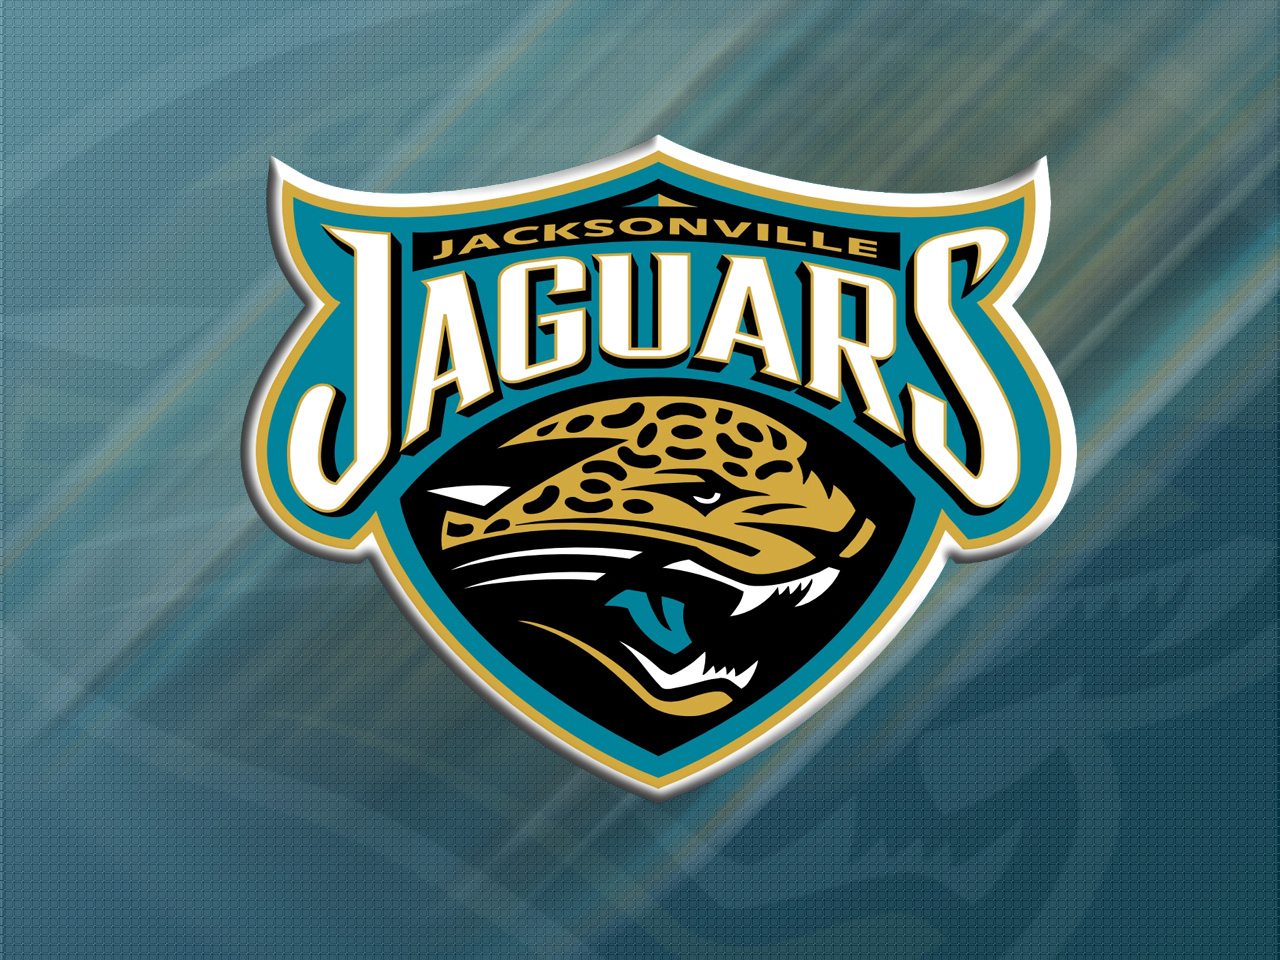 jacksonville jaguars new logo 2017 - photo #25